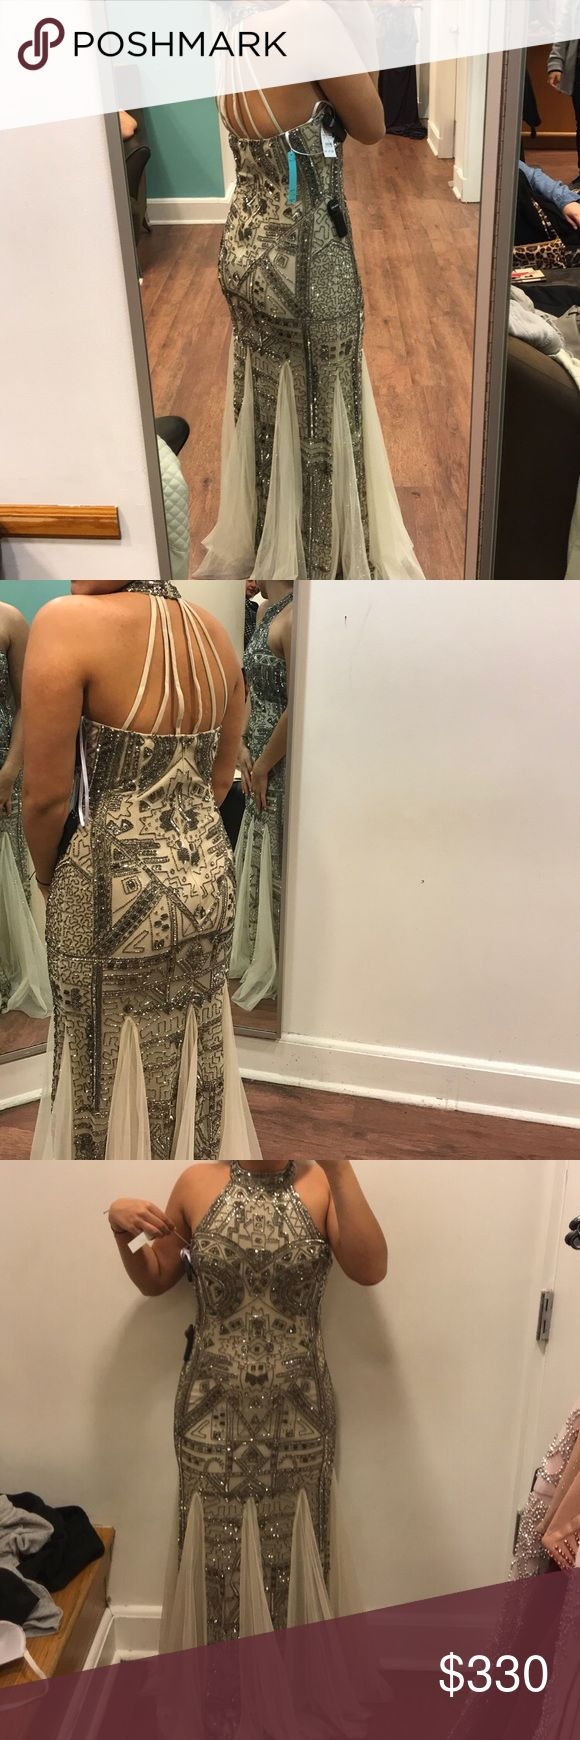 Prom dress This is a brand new prom dress from 2018 with tags and only time worn was in the fitting room. A beautiful champagne color and unique beading. In person the dress is even more beautiful! group usa Dresses Prom